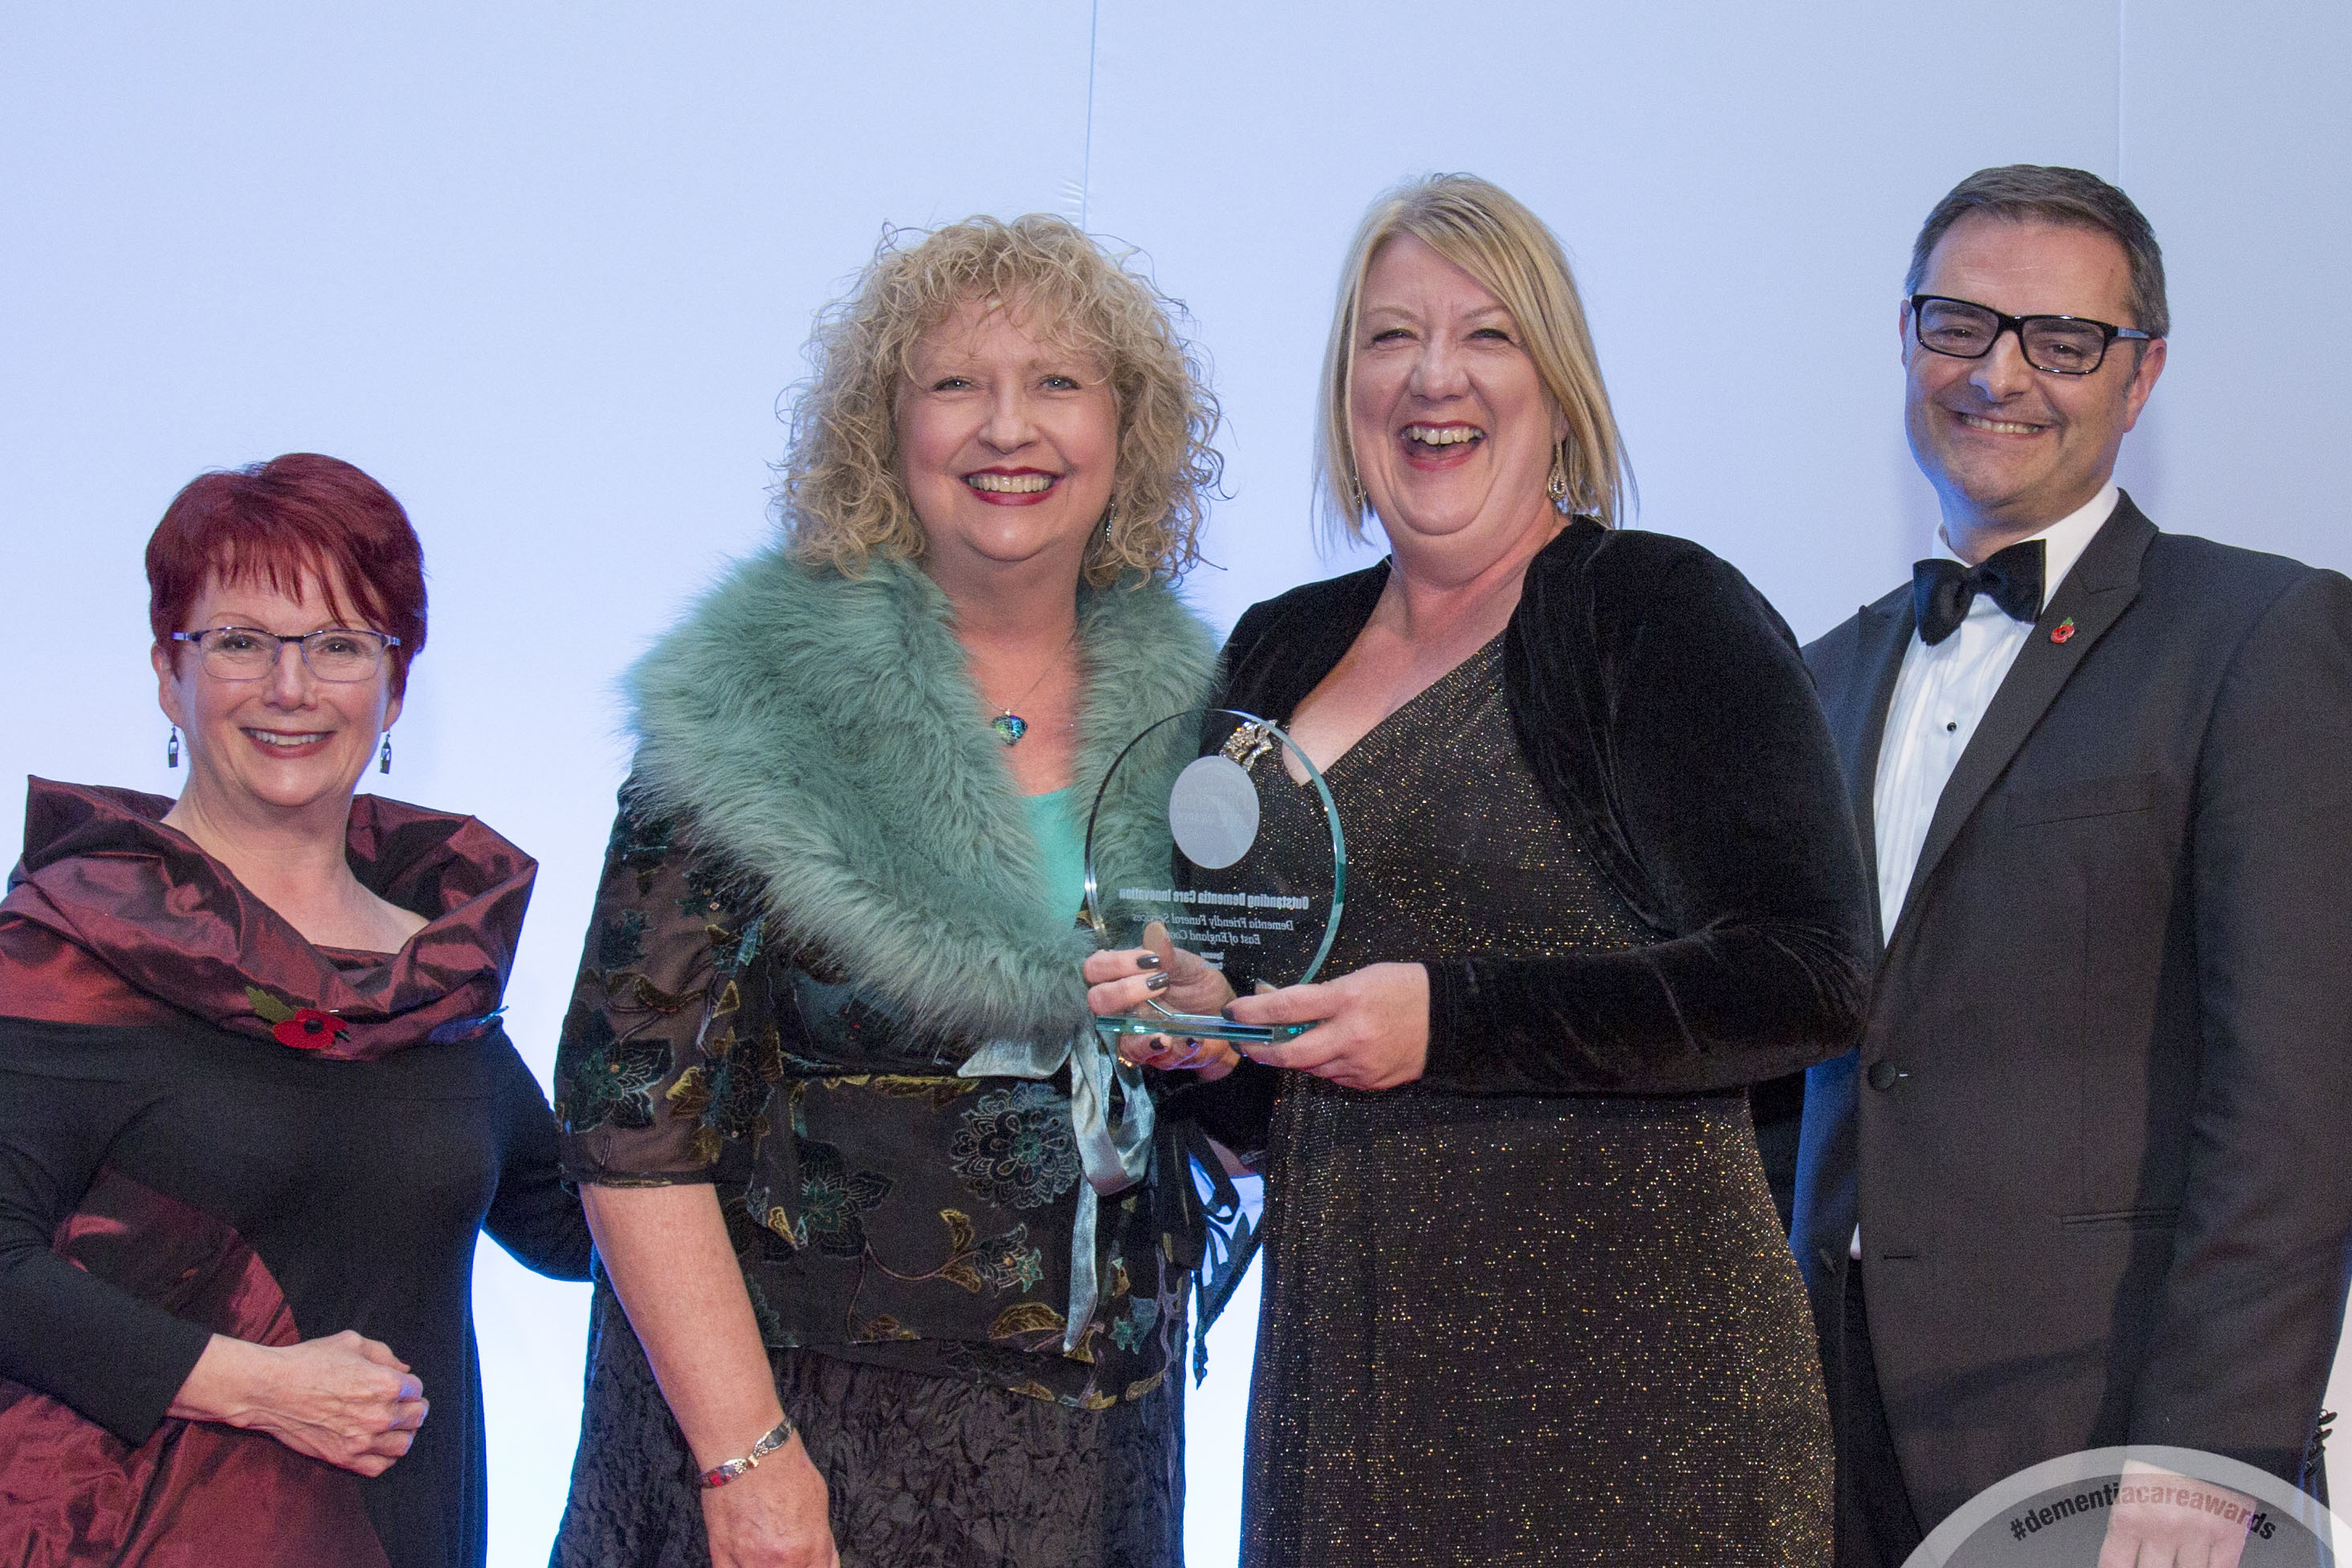 Danuta Lipinska (second from the left) receives the Outstanding Dementia Care award